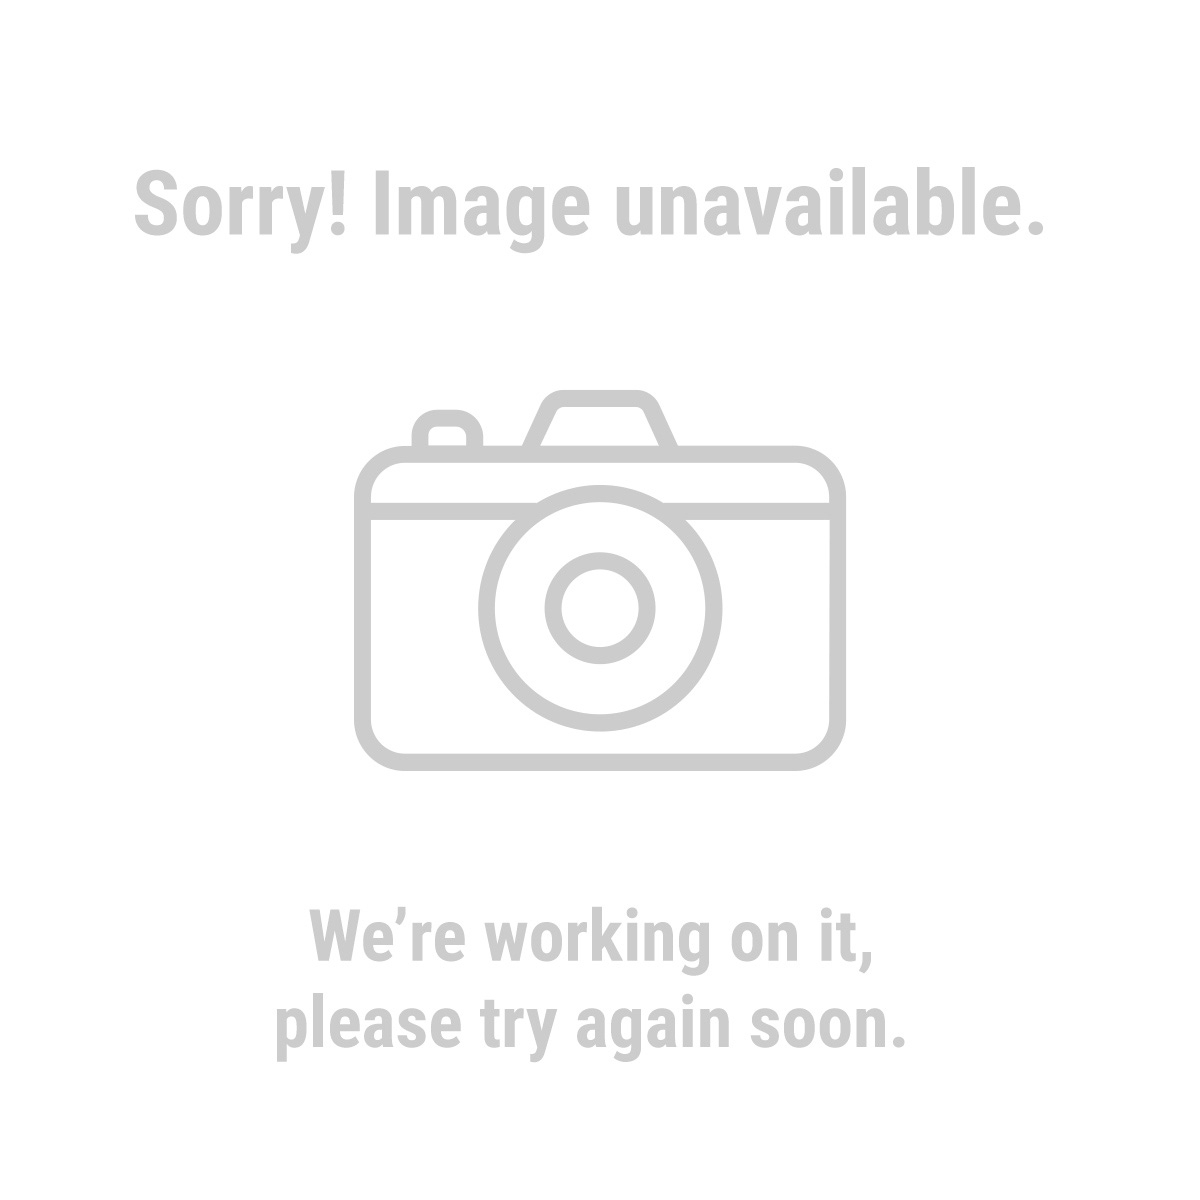 What are some good central pneumatic air tools?